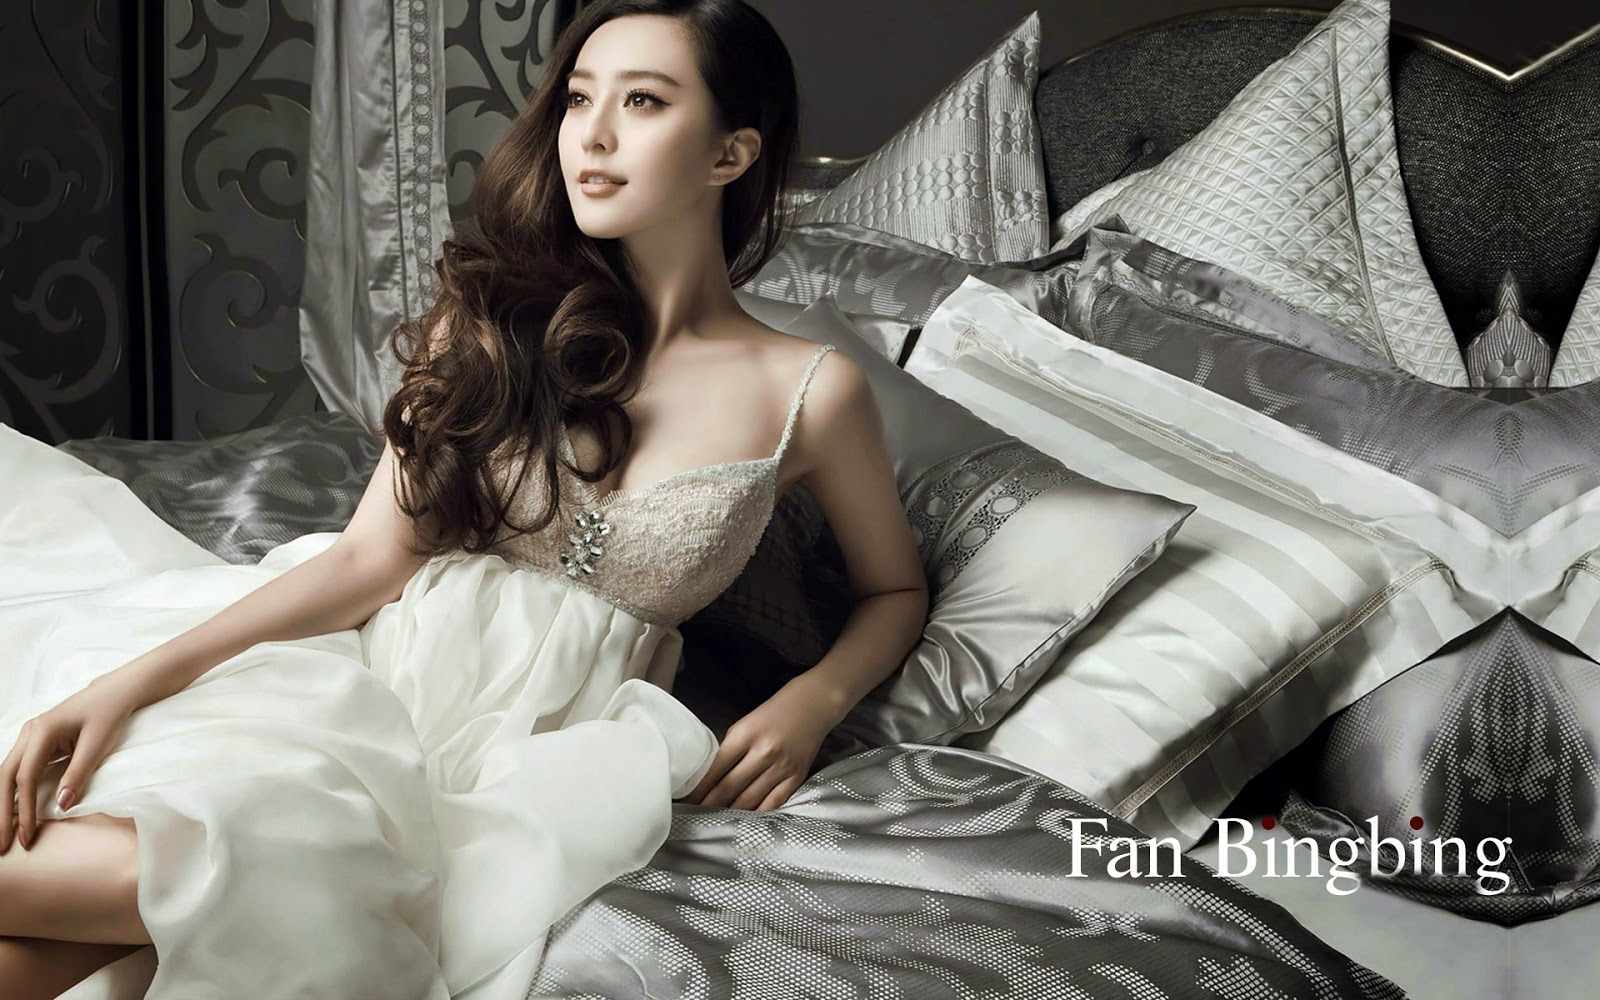 Fan Bingbing HD Wallpapers Free Download